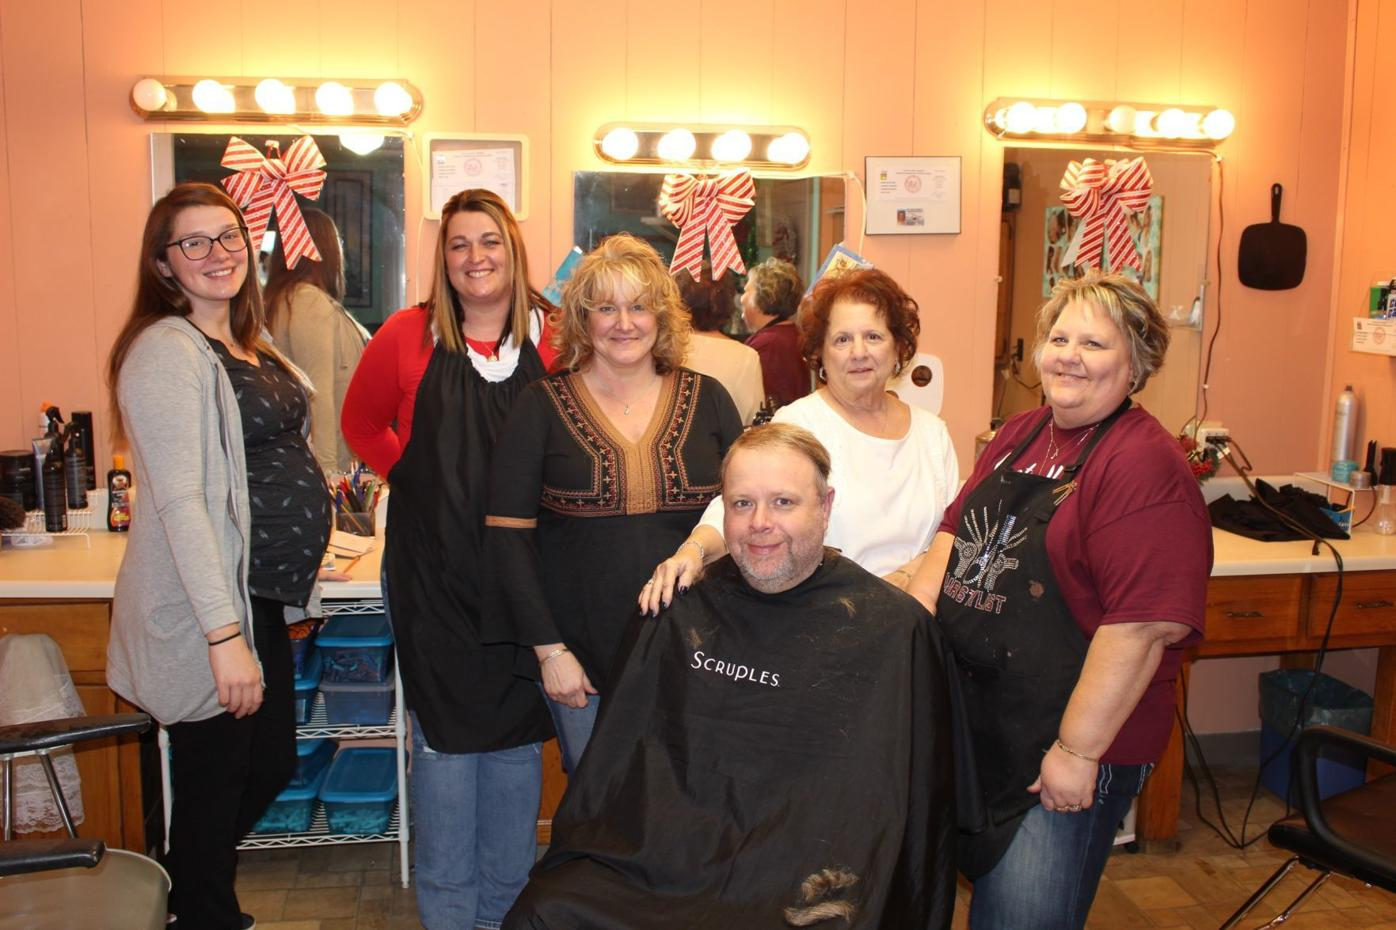 Halloween 2020 Jane Lew Wv Country Hair Salon in Jane Lew, WV, continues to provide high